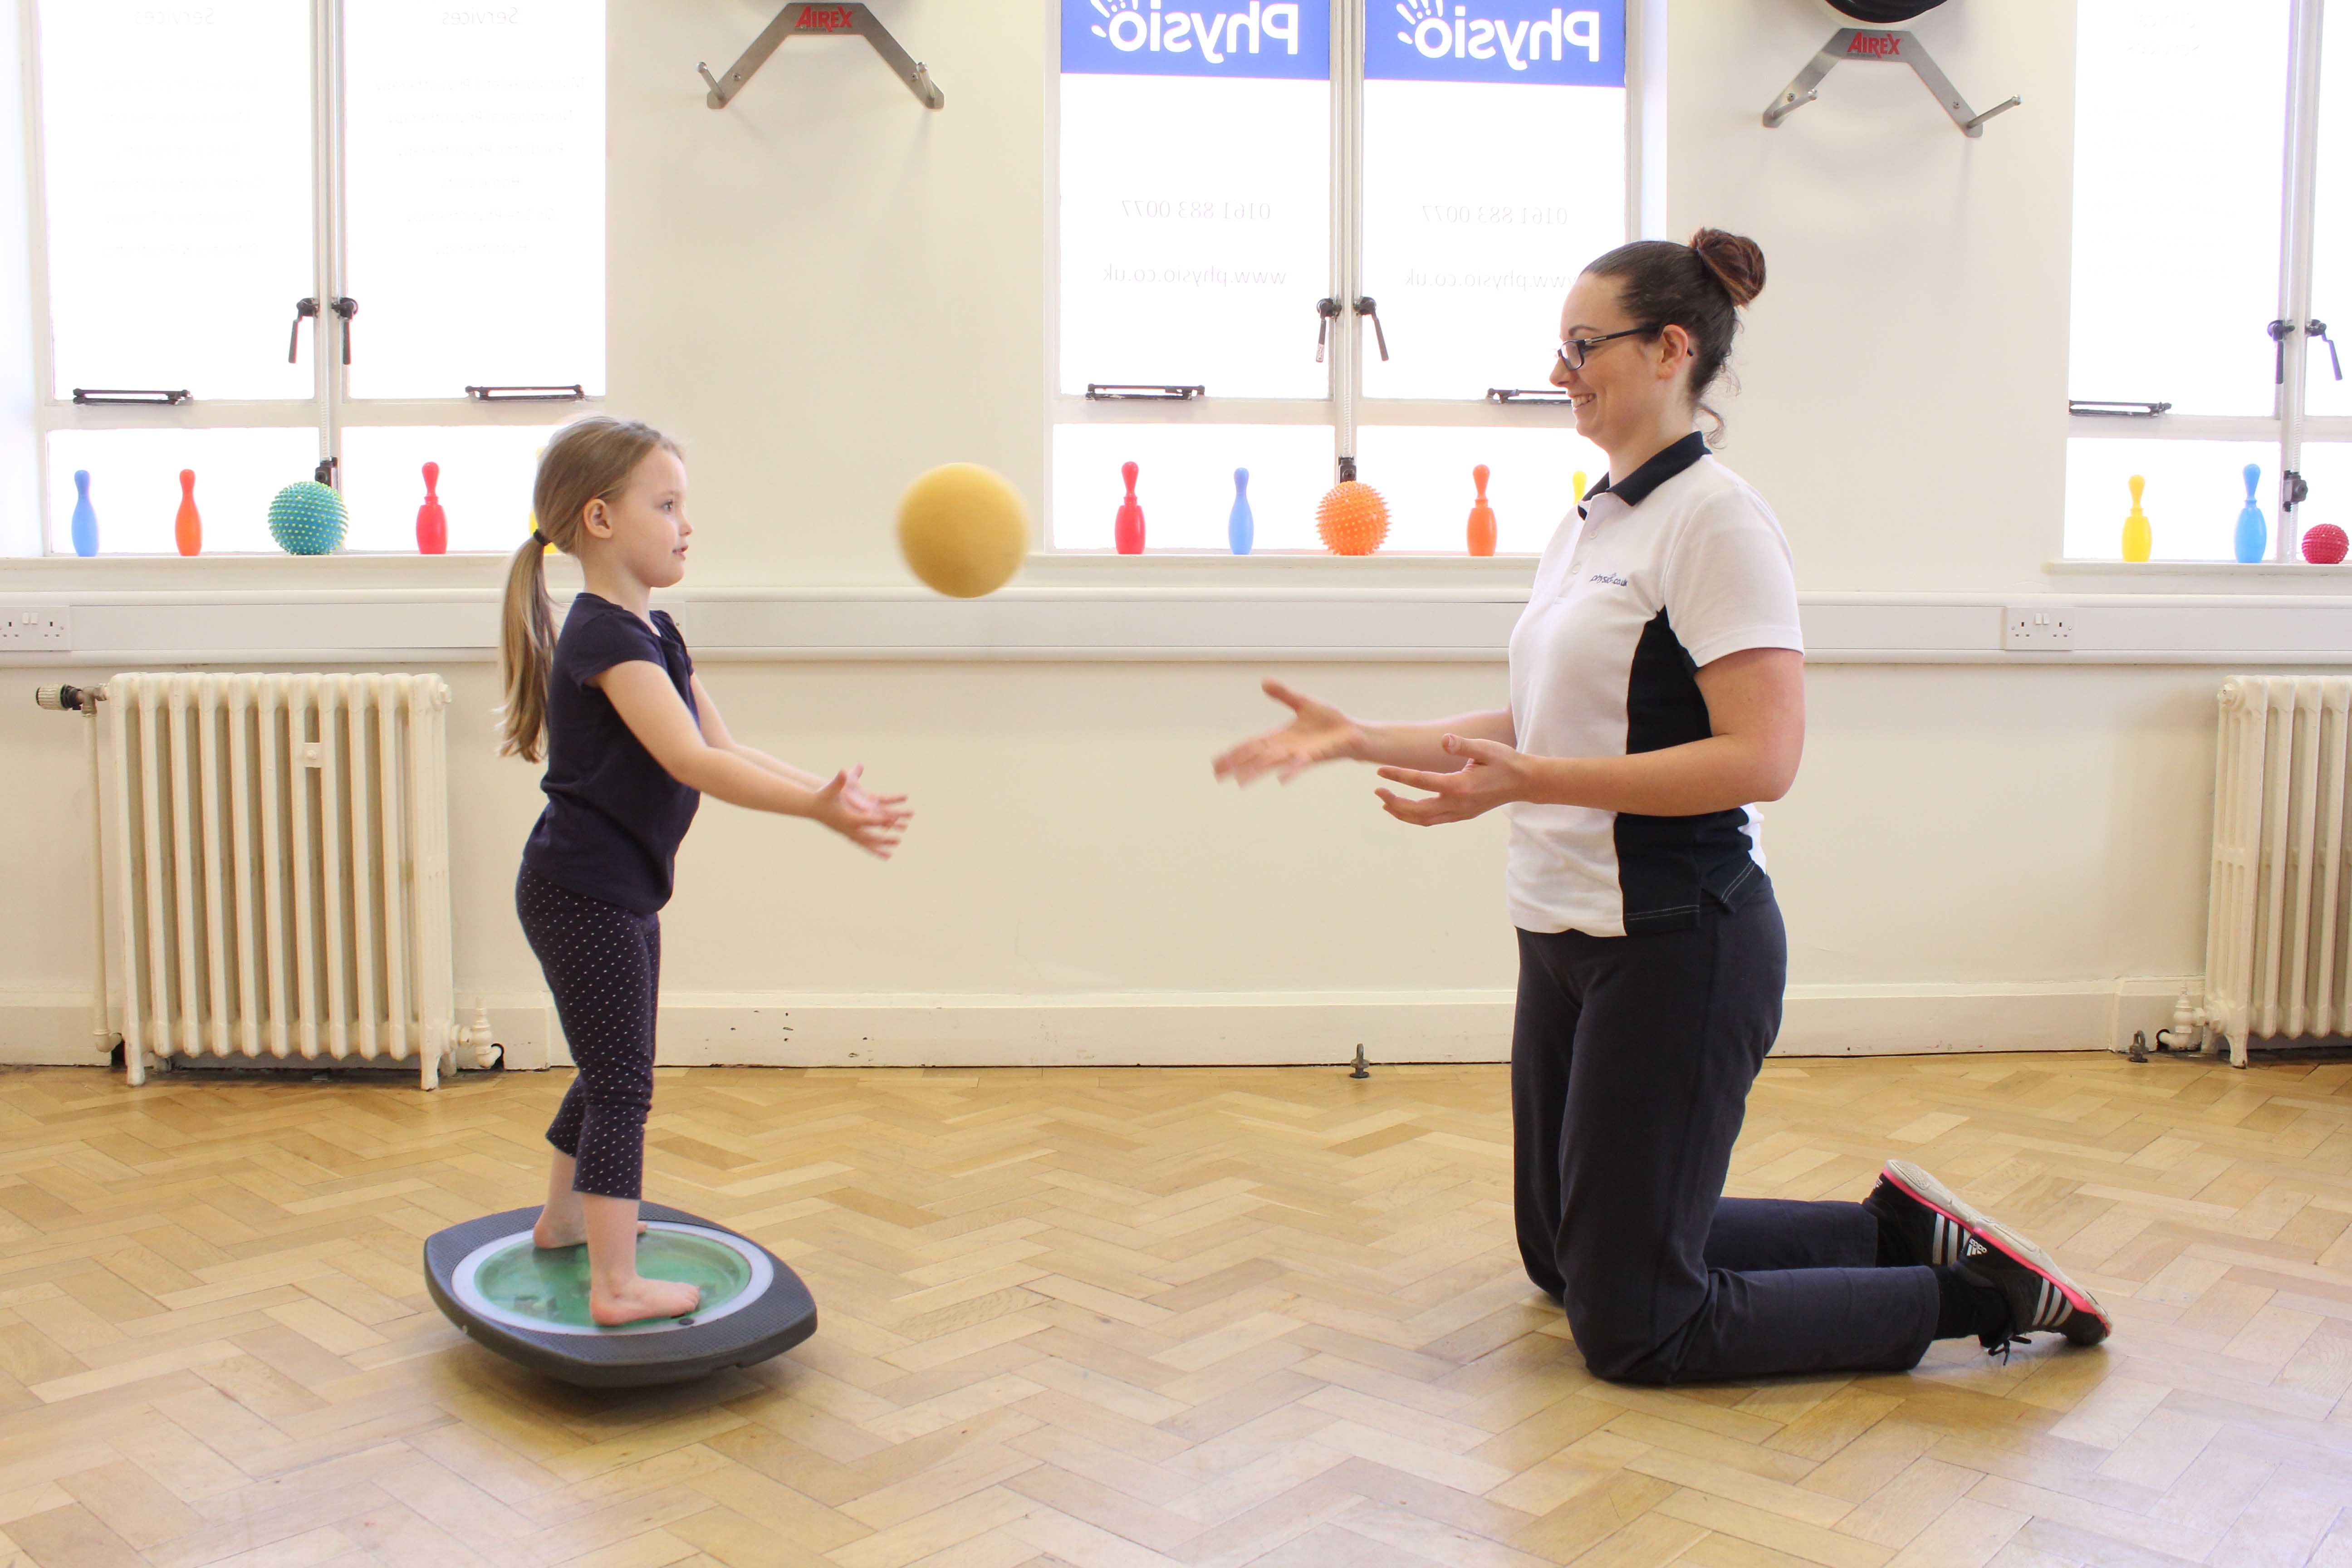 Balance training using a wobble board and ball with assistance from a paediatric neuro physiotherapist